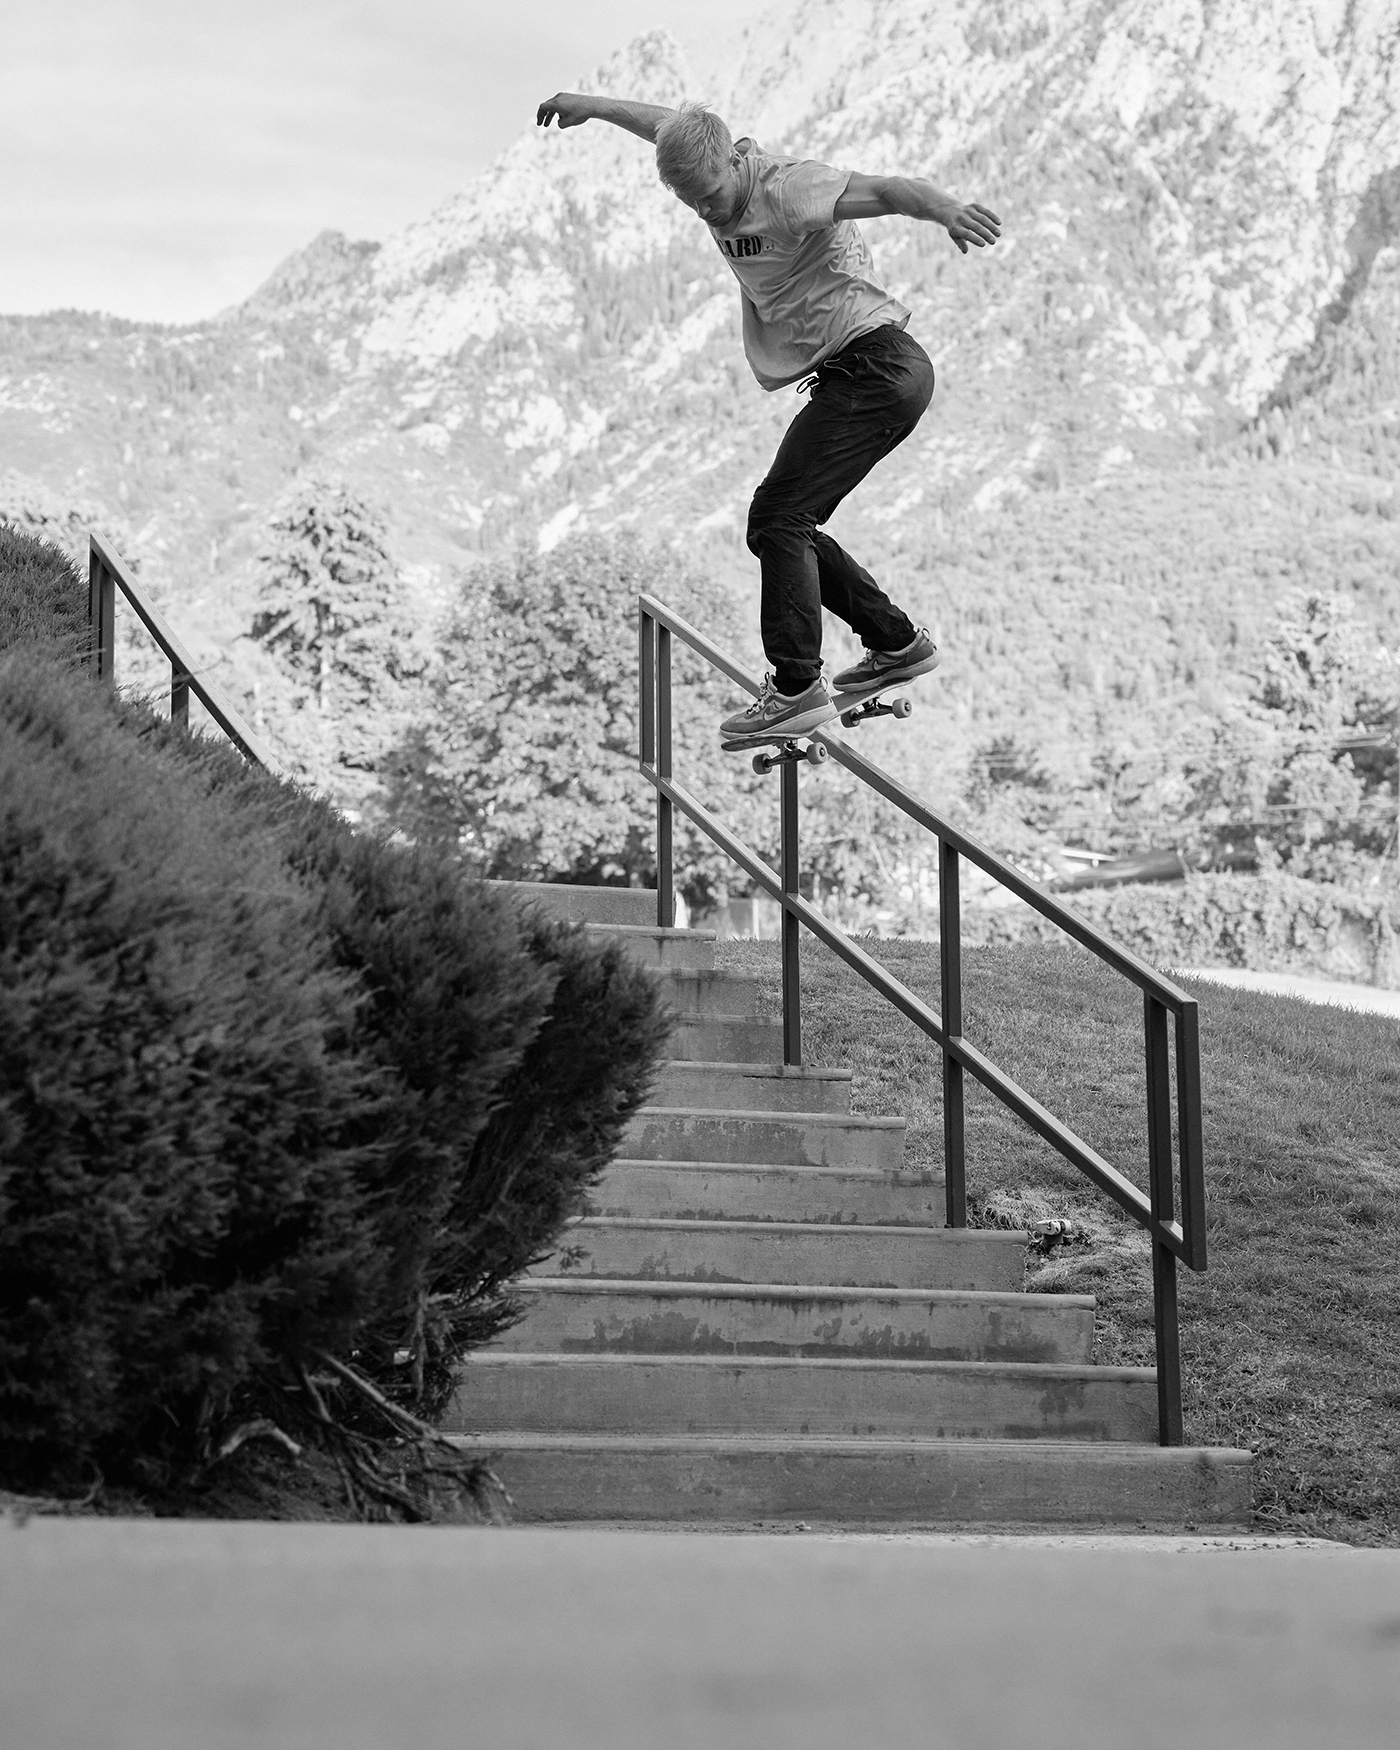 Jacob's perfect form is shown off with a backside lipslide.